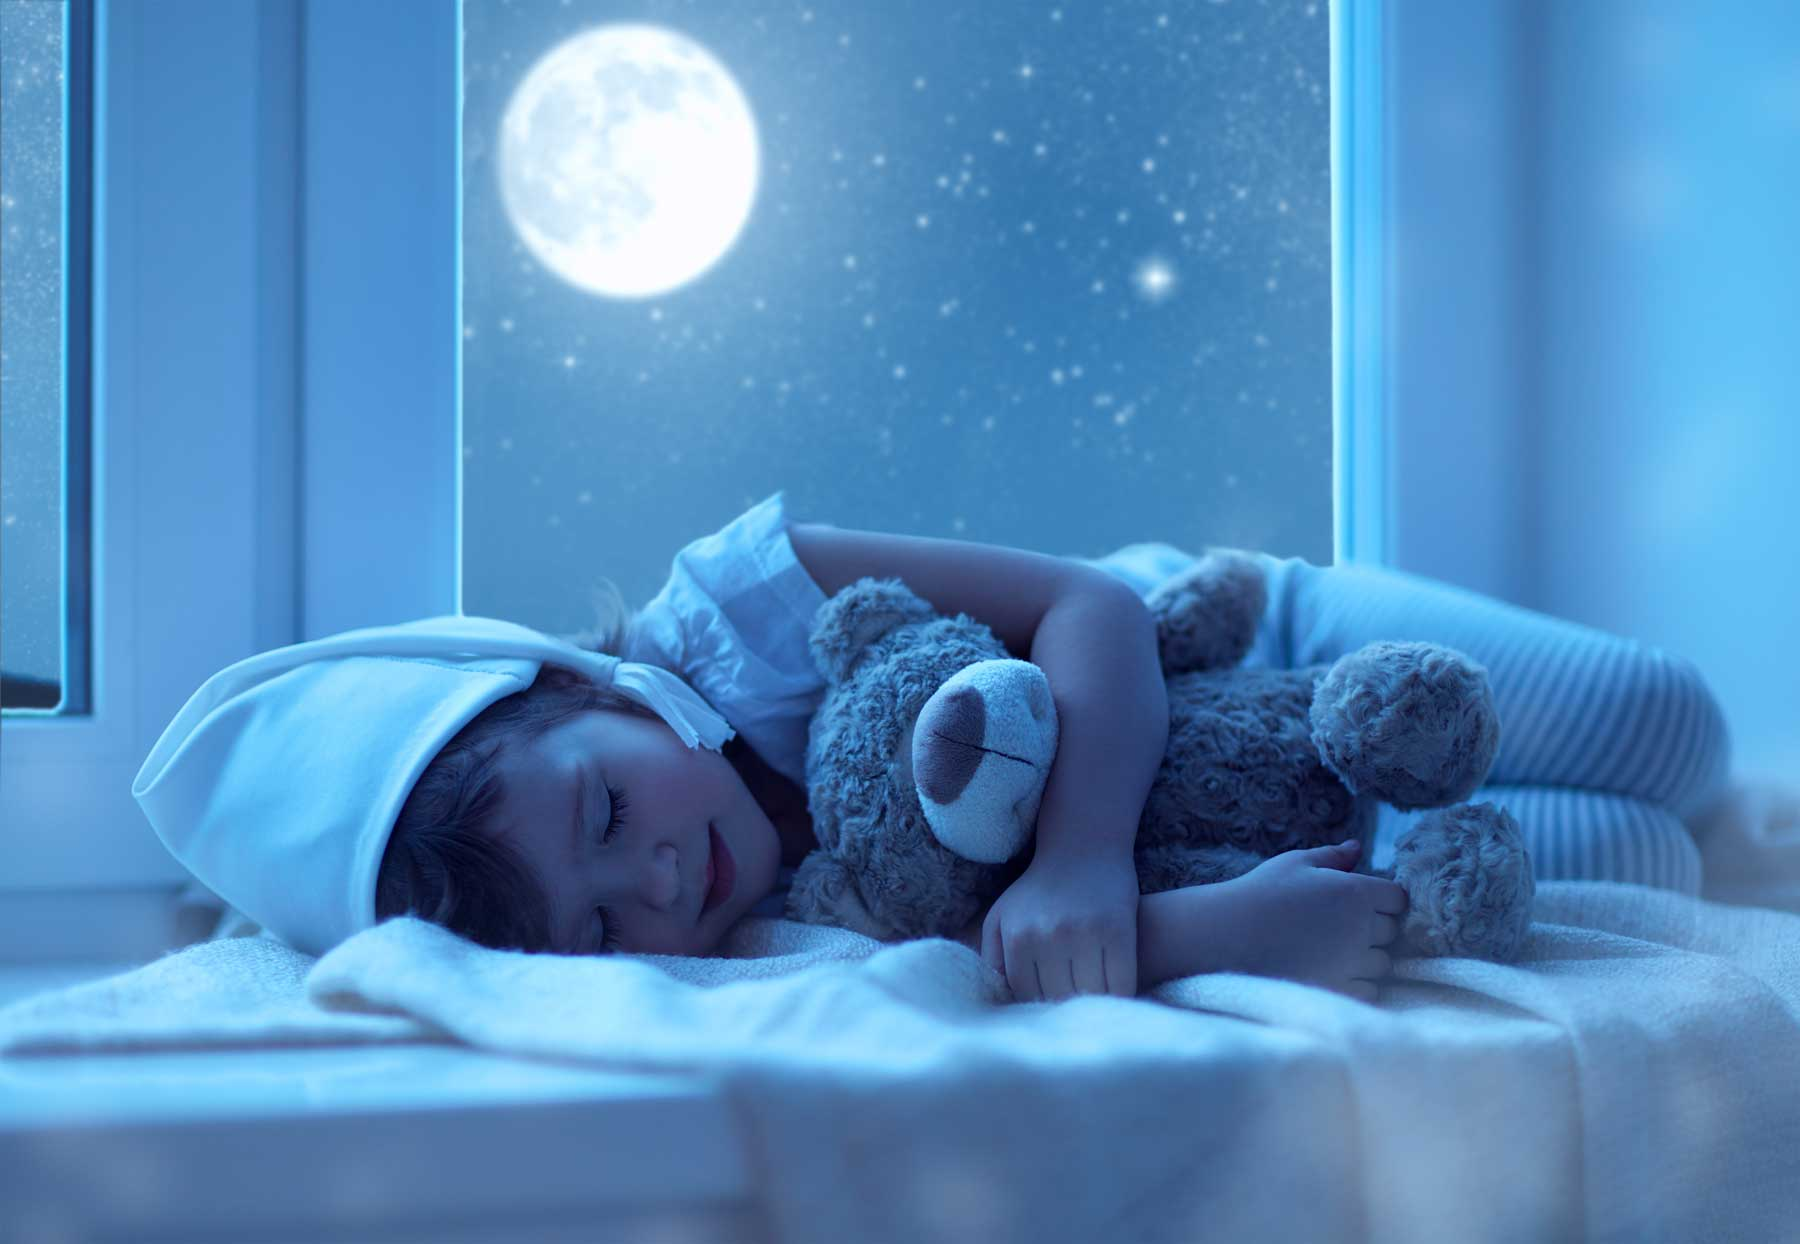 Little kid sleeping at night | Can Children Be Given Nitrous Oxide?